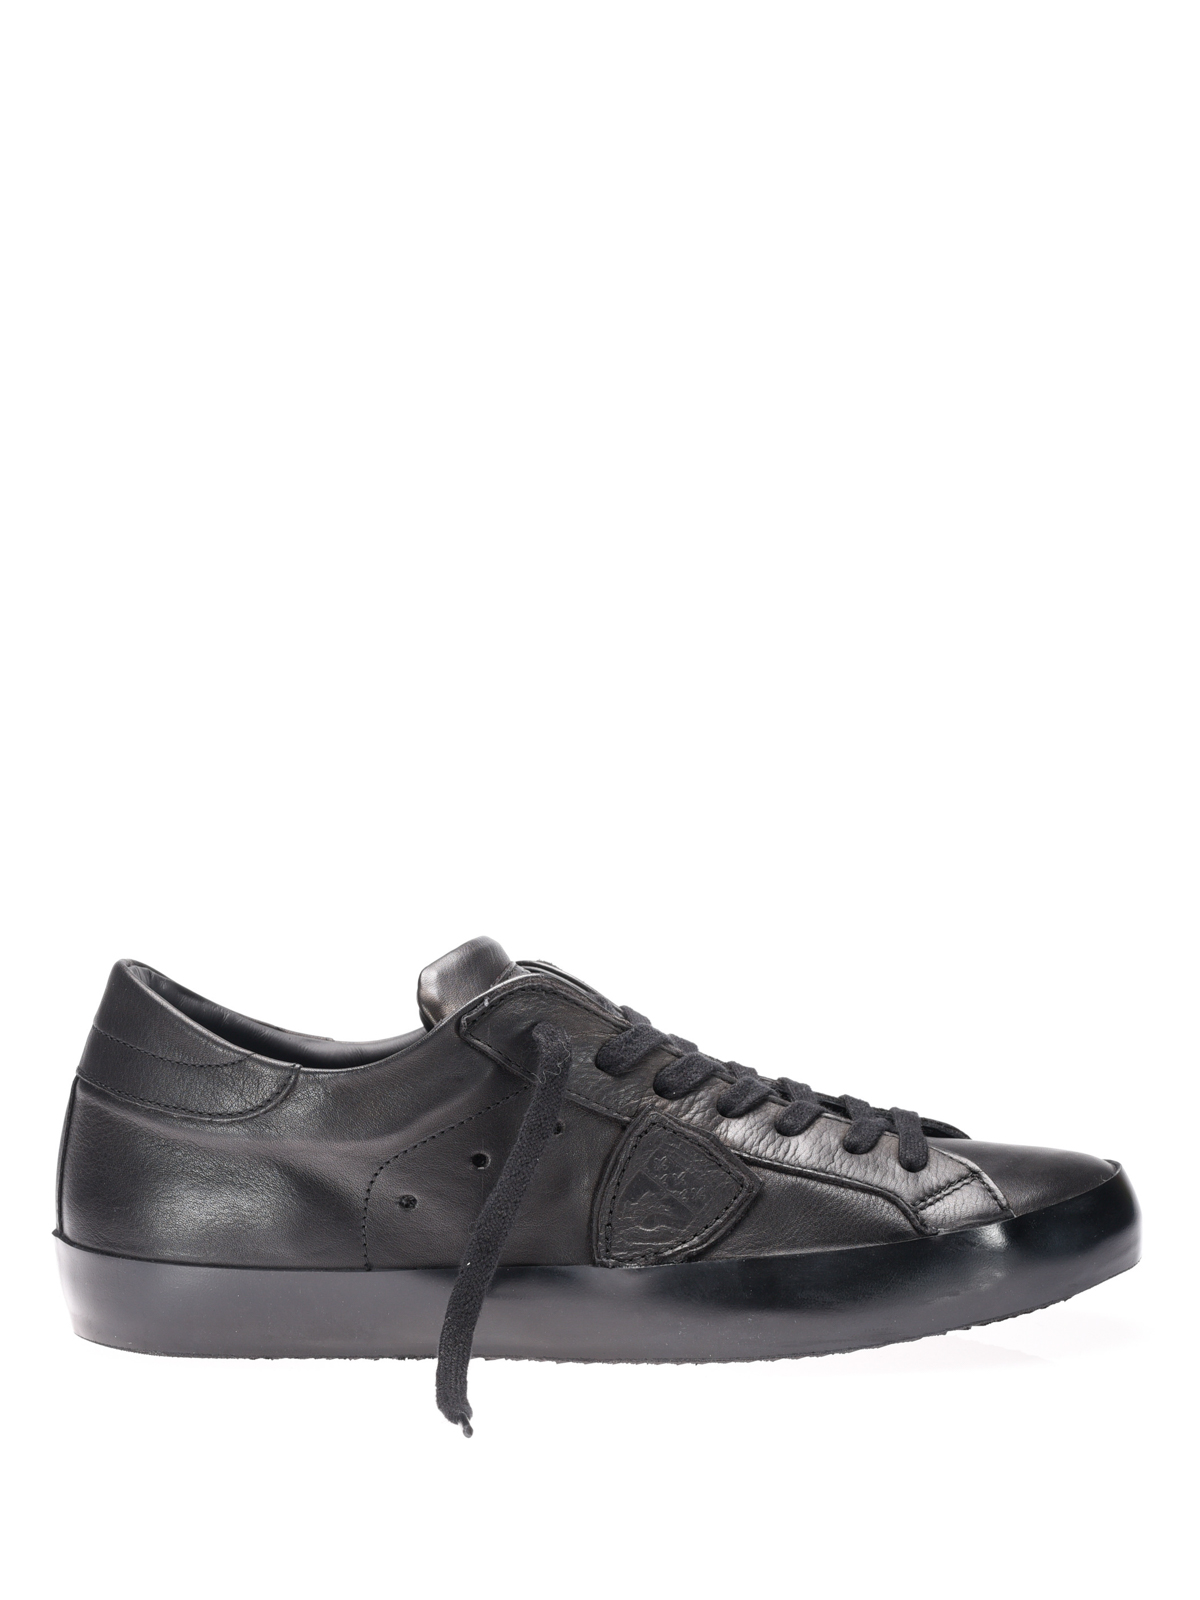 leather paris sneakers by philippe model trainers ikrix. Black Bedroom Furniture Sets. Home Design Ideas